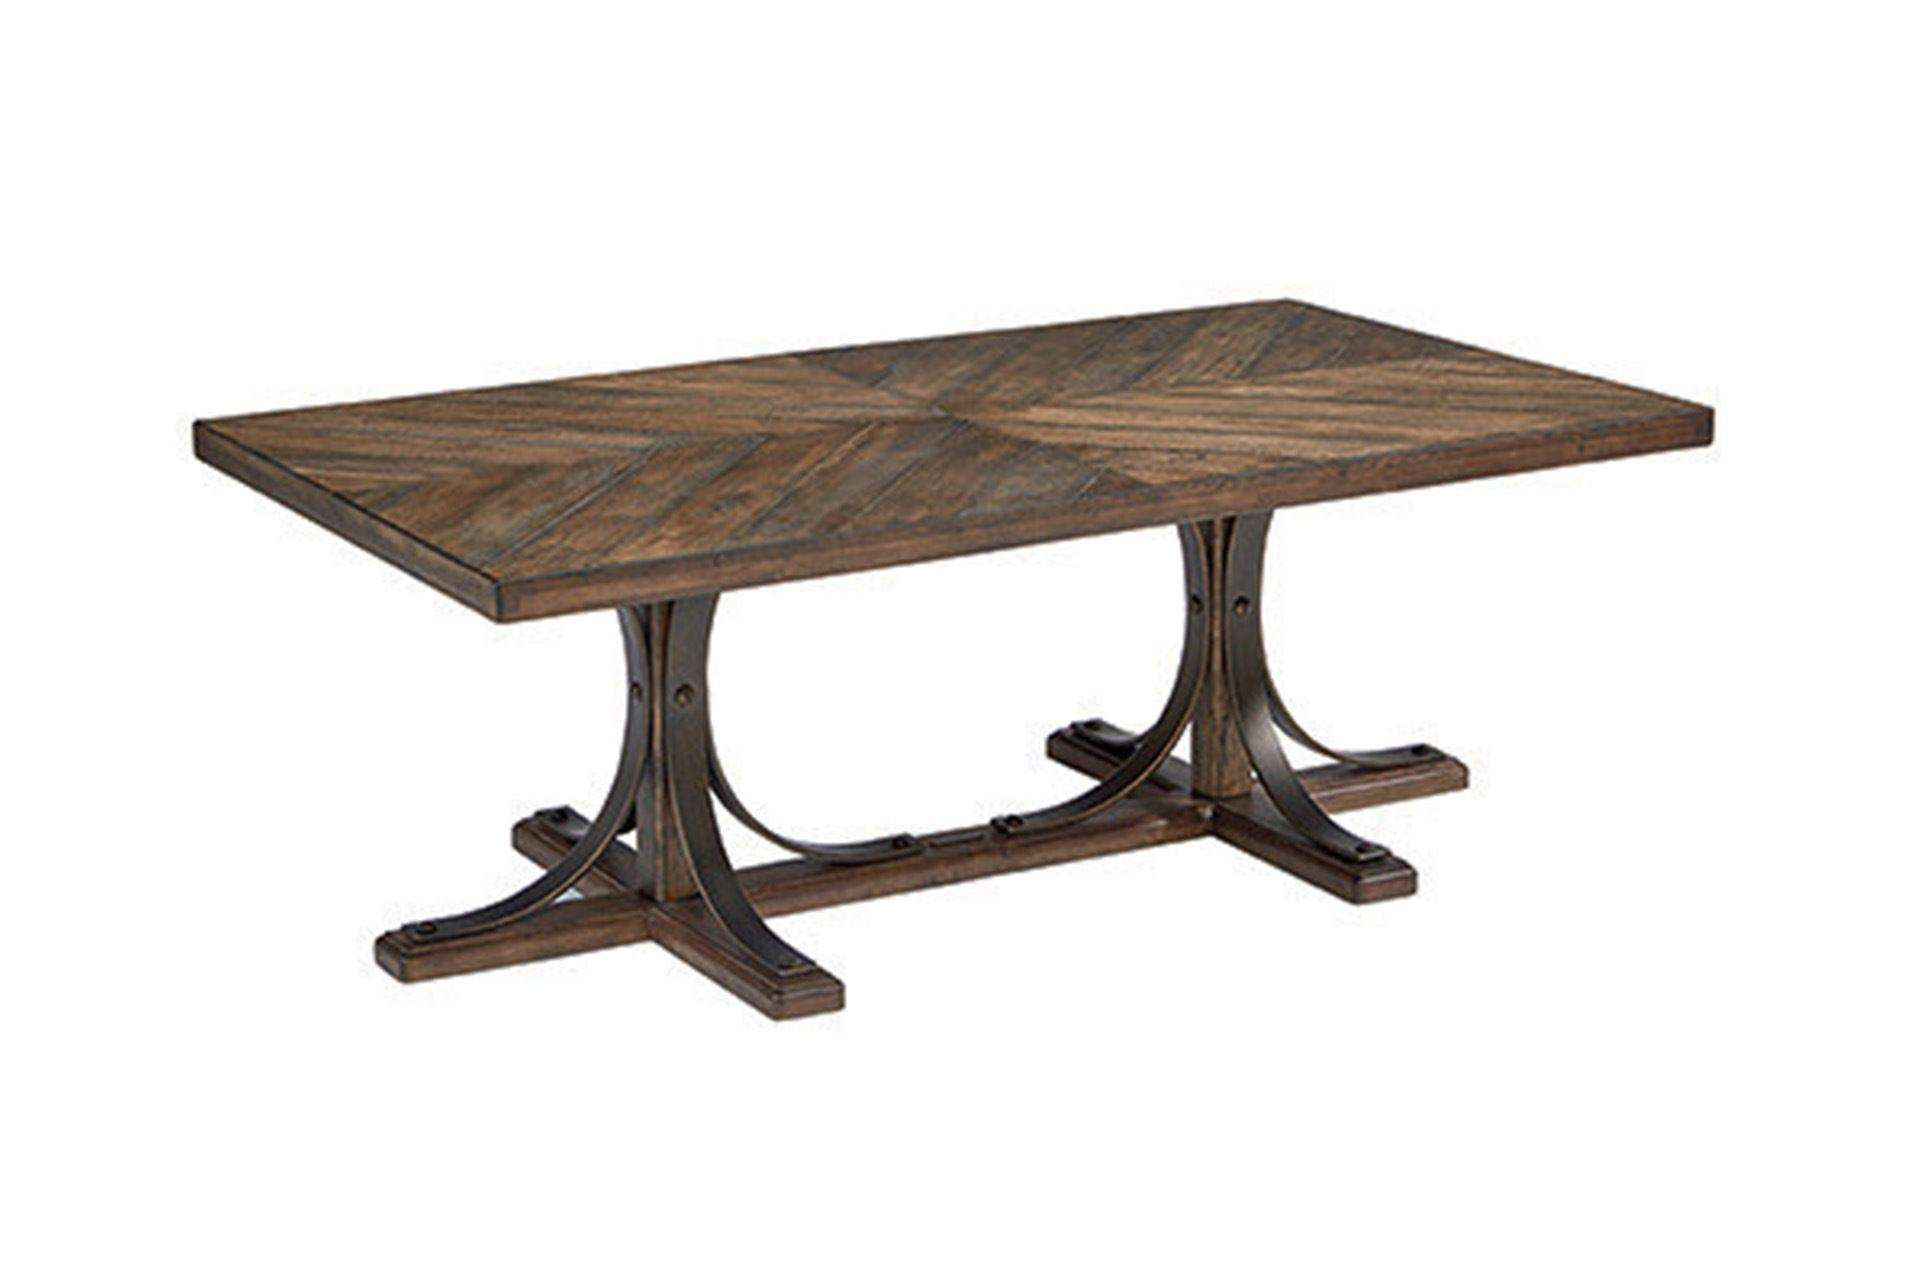 Astonishing Magnolia Home Iron Trestle Coffee Table By Joanna Gaines Gmtry Best Dining Table And Chair Ideas Images Gmtryco